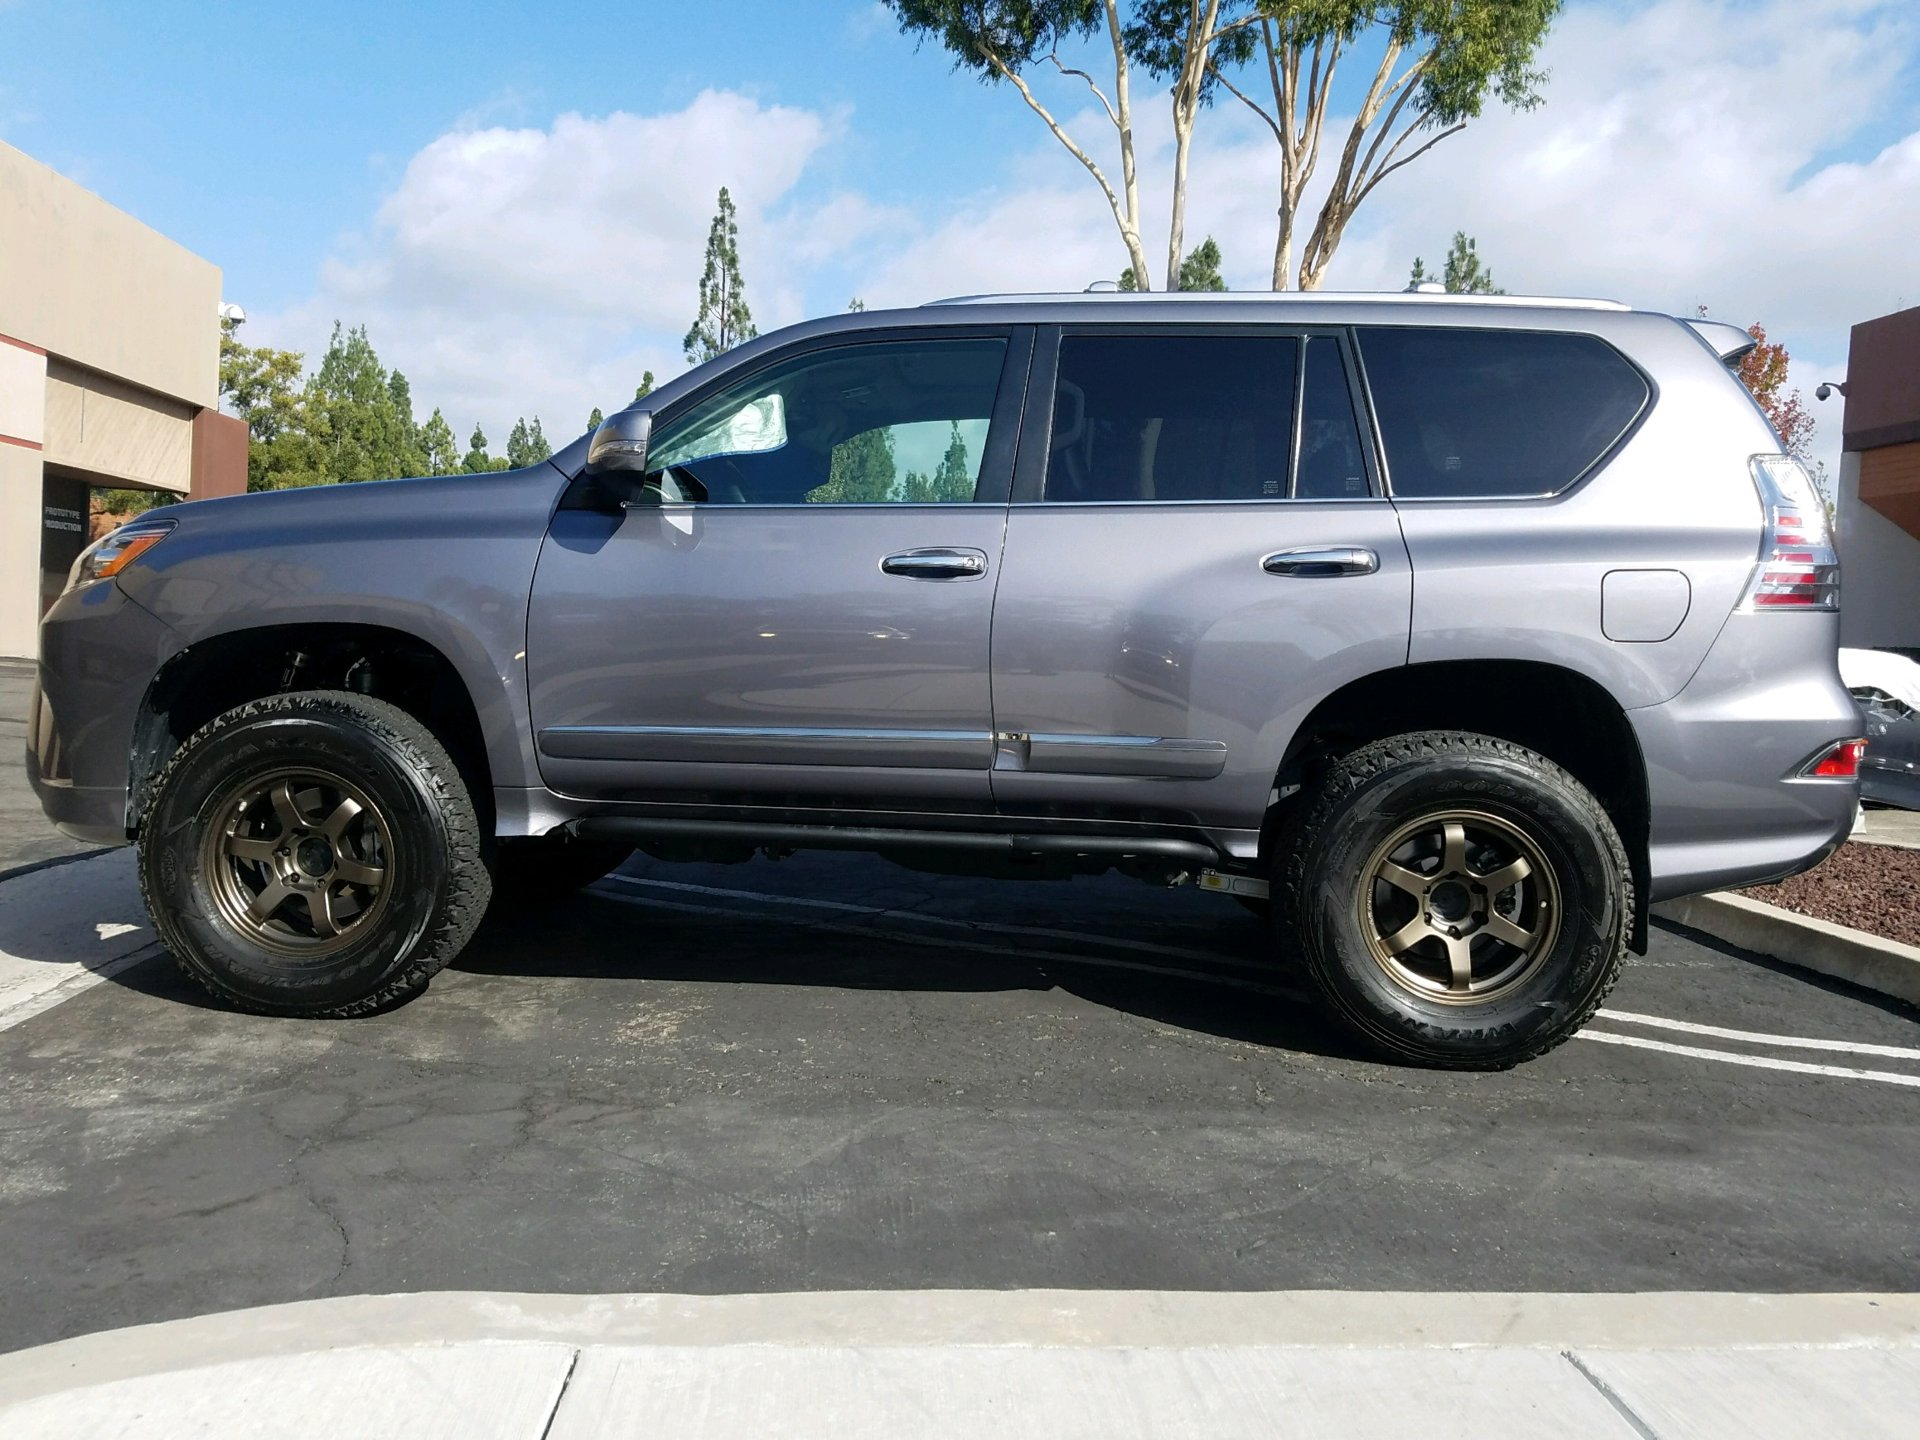 Another lifted GX460 | IH8MUD Forum